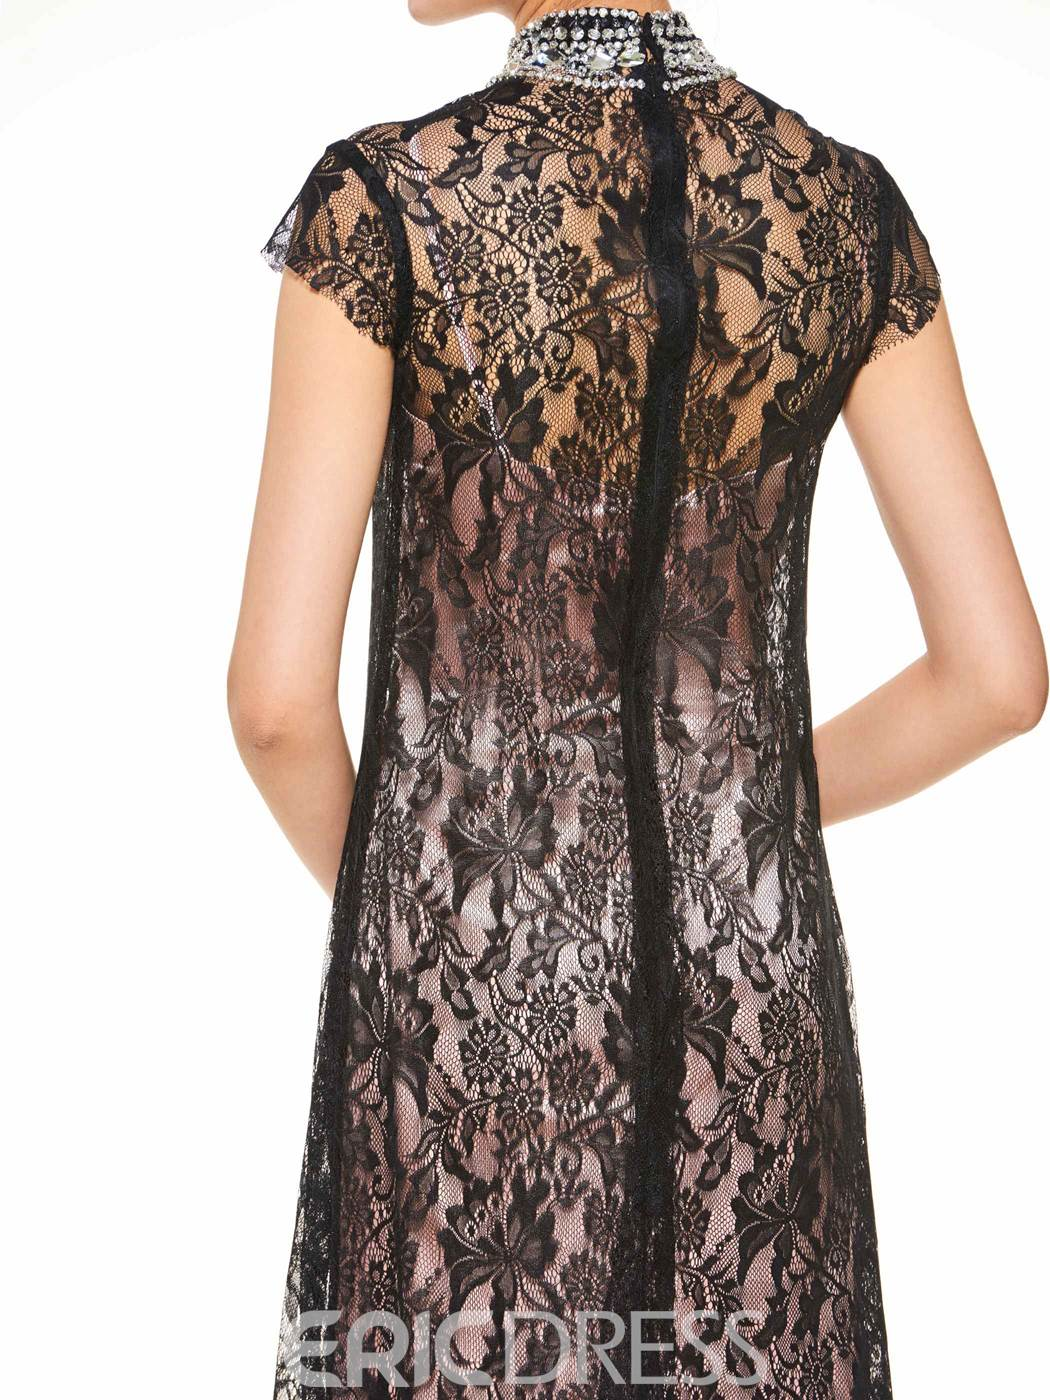 Ericdress Elegant High Neck Beaded Lace A Line Mother Of The Bride Dress